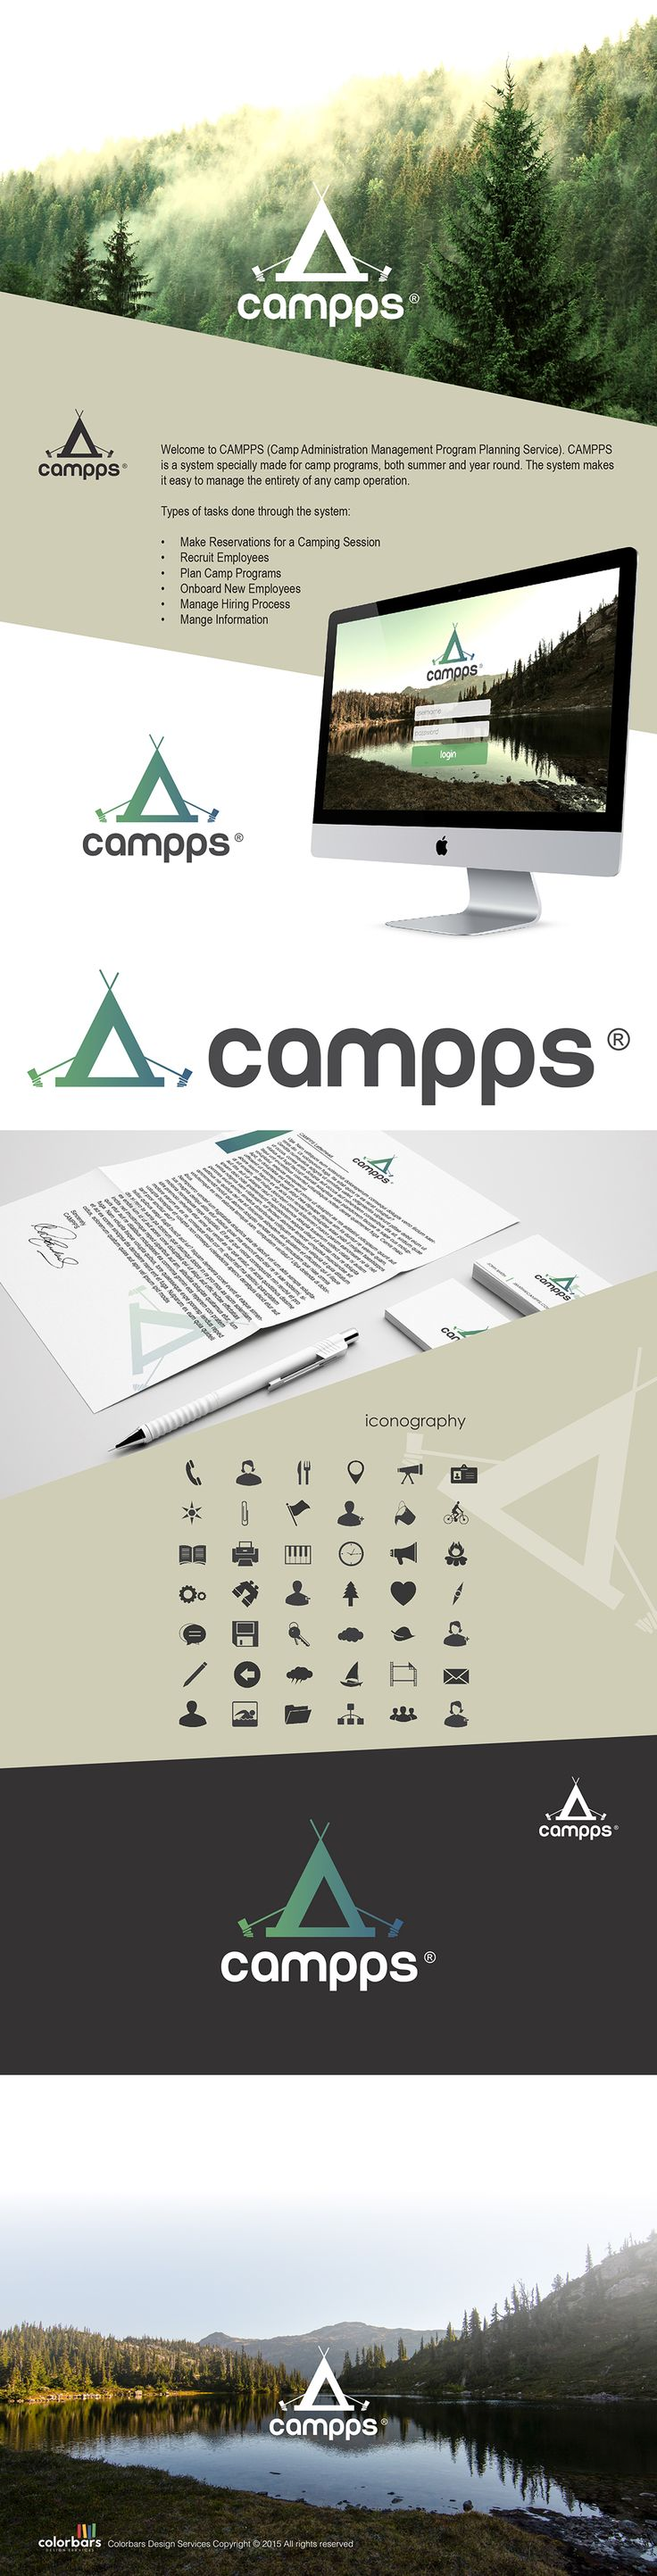 payroll resume objective%0A Campps is a software company that provides administrative support for     camps  Go